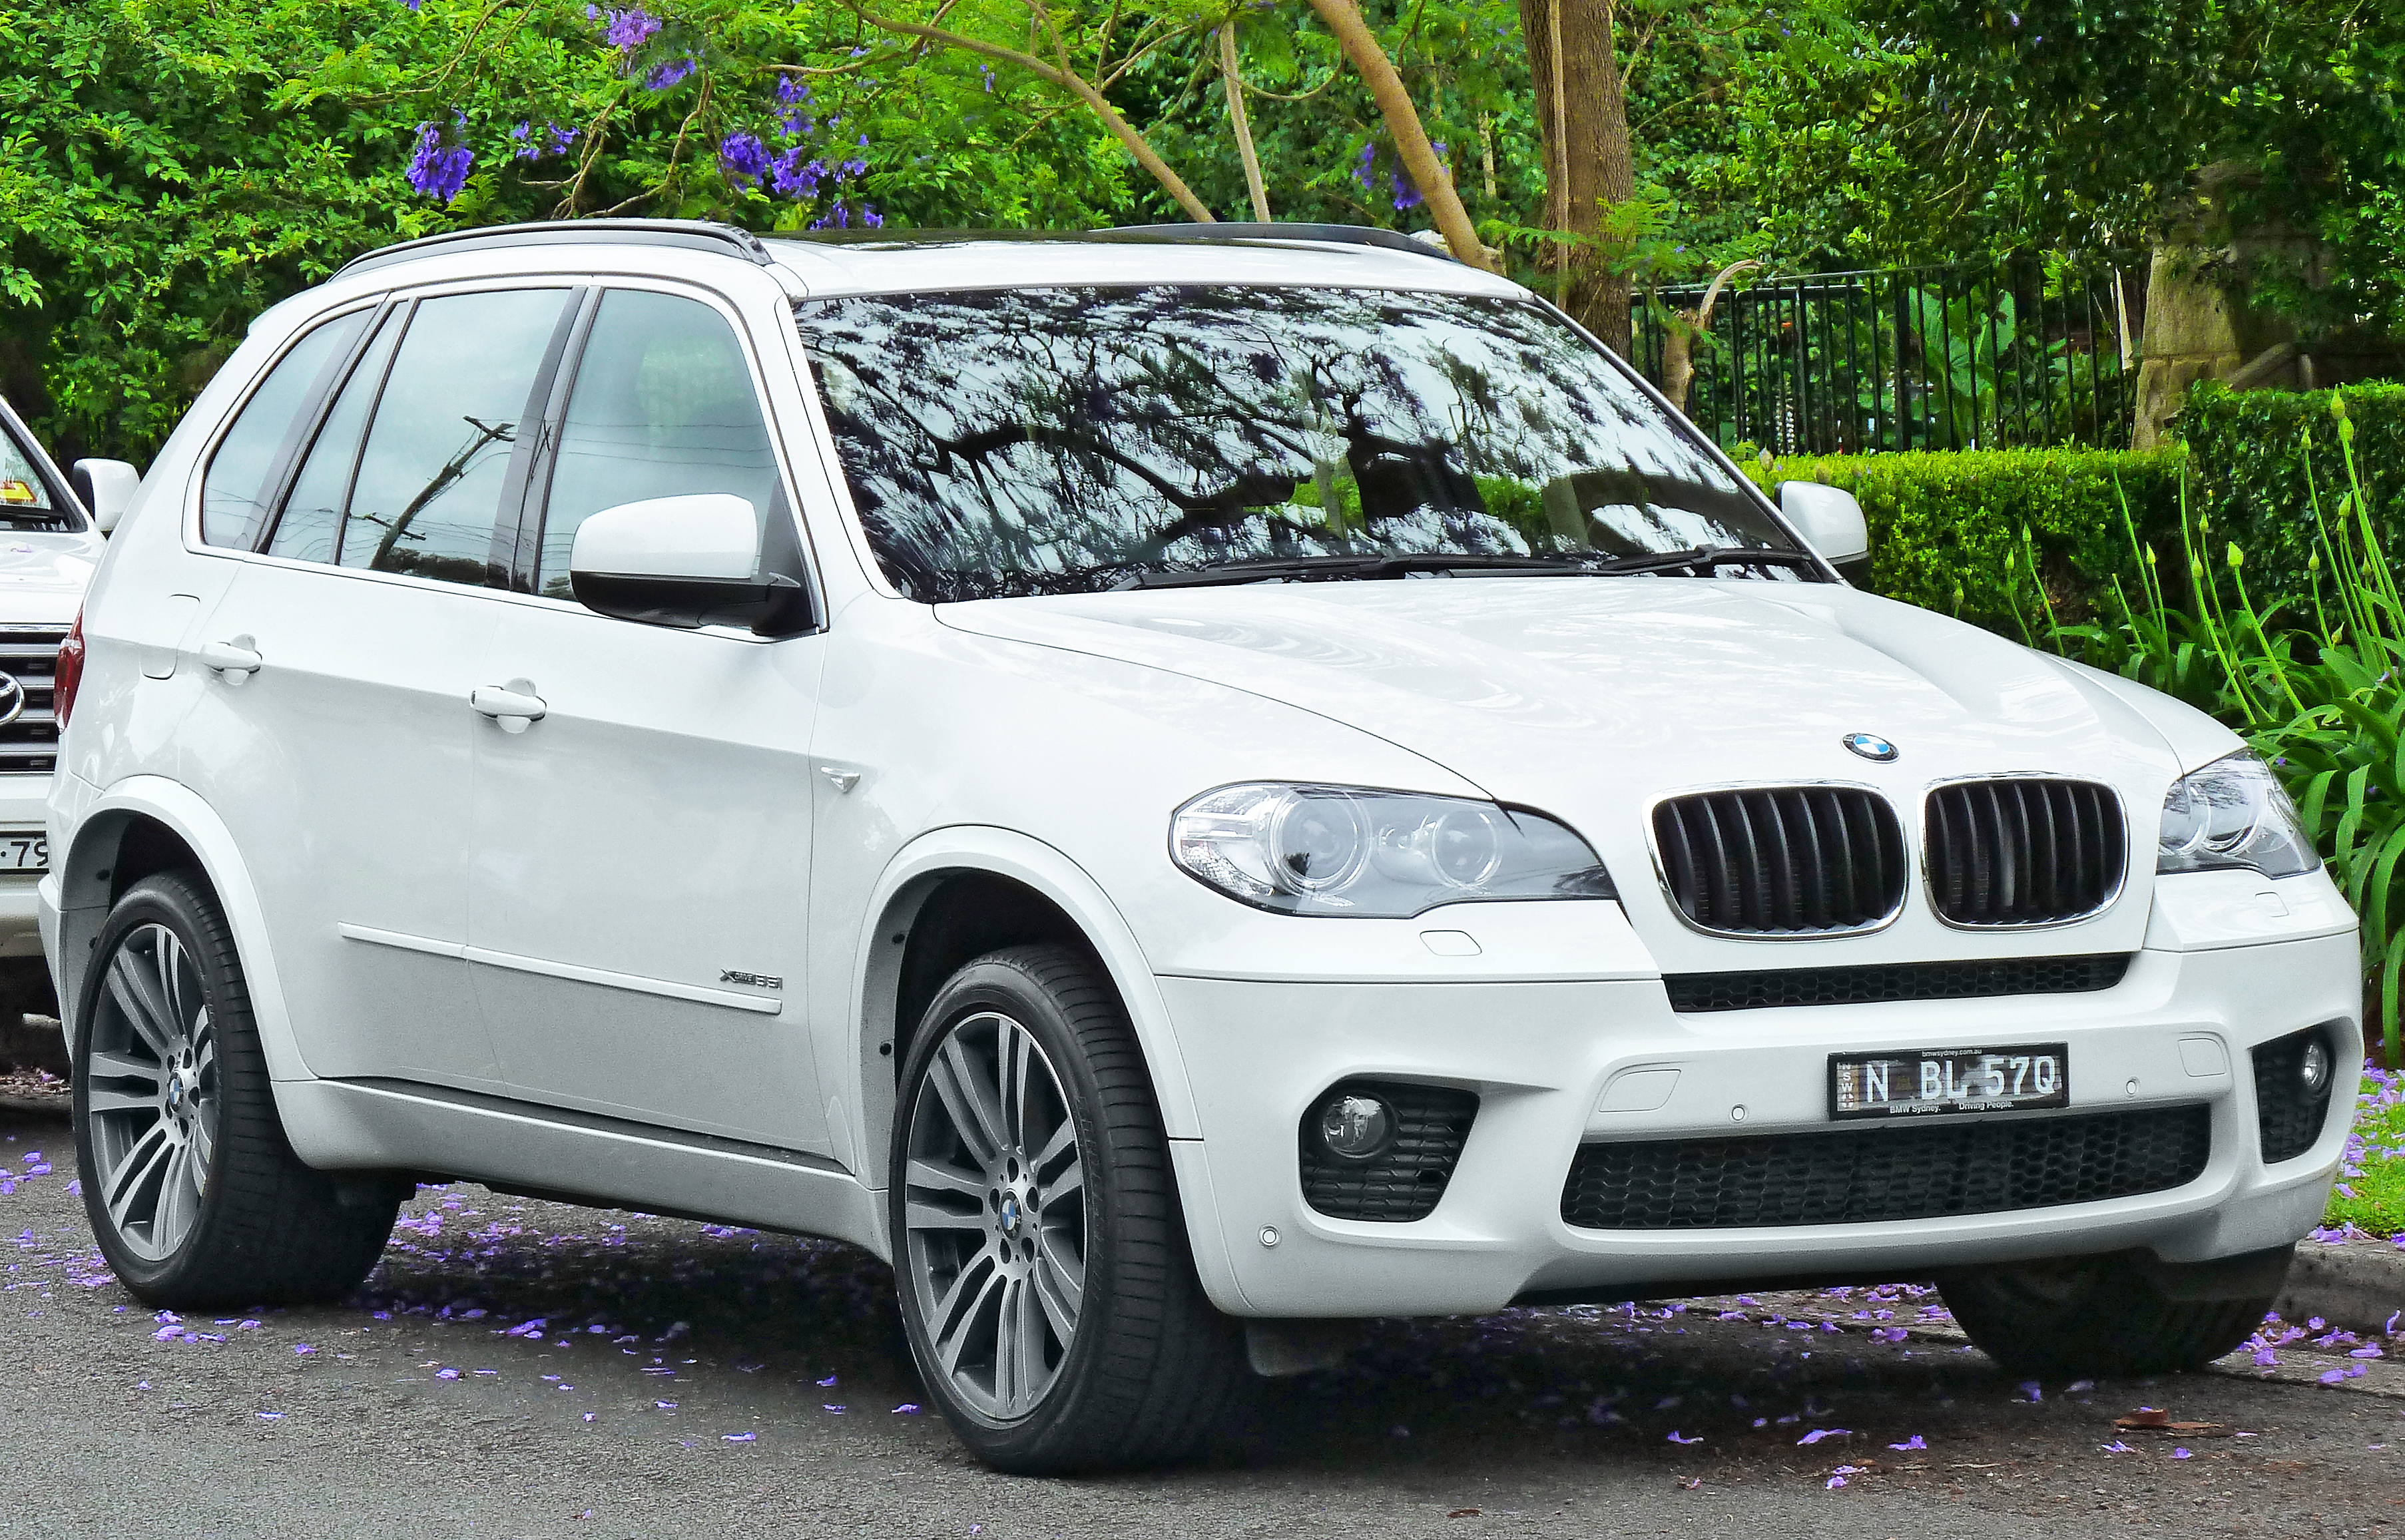 file 2010 2011 bmw x5 e70 xdrive35i wagon 2011 11 18. Black Bedroom Furniture Sets. Home Design Ideas